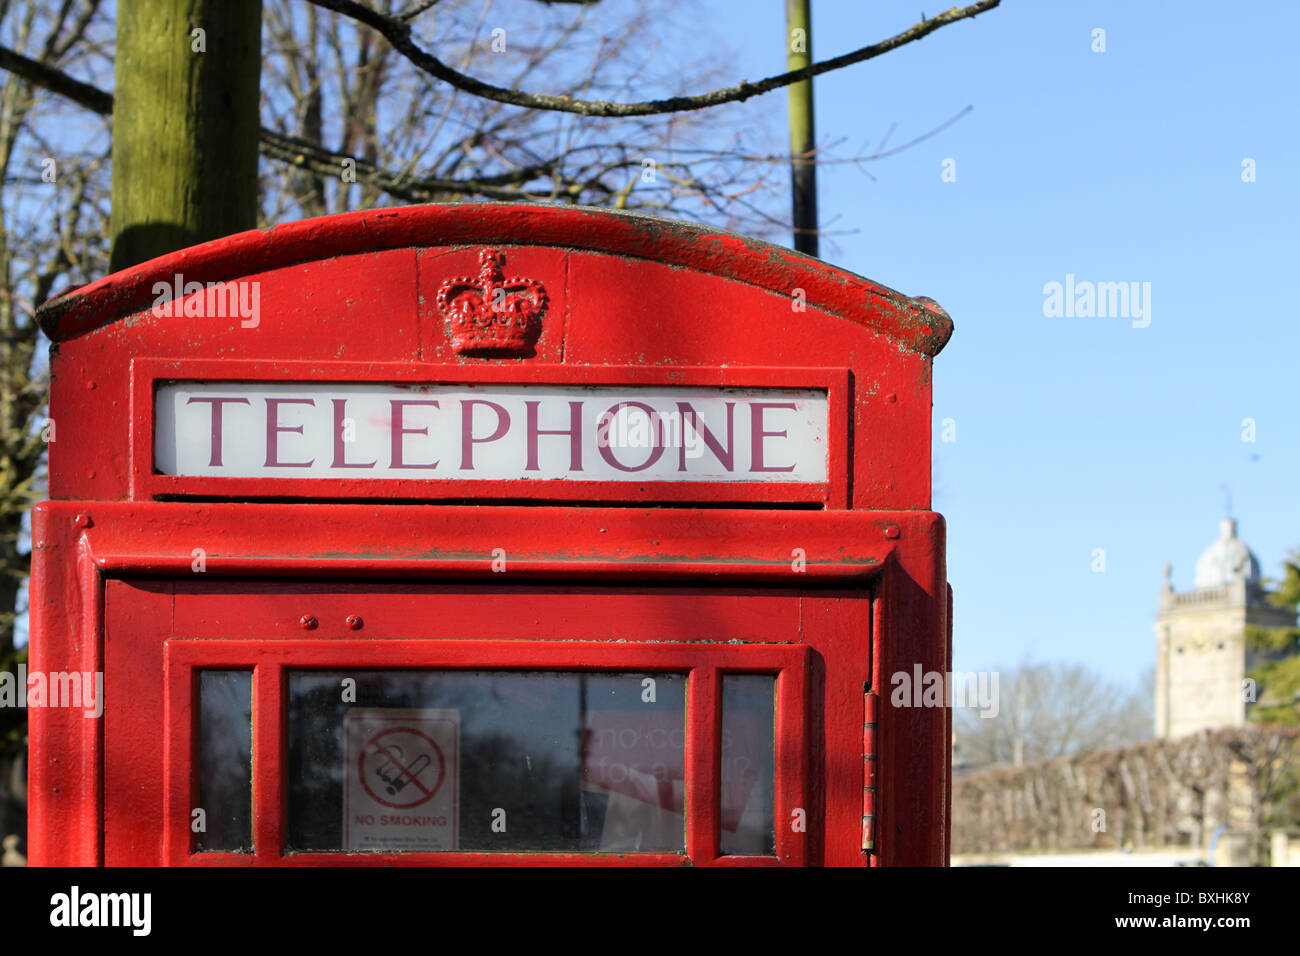 Traditional red telephone box in the tourist town of Bourton on the Water, Gloucestershire, UK - Stock Image